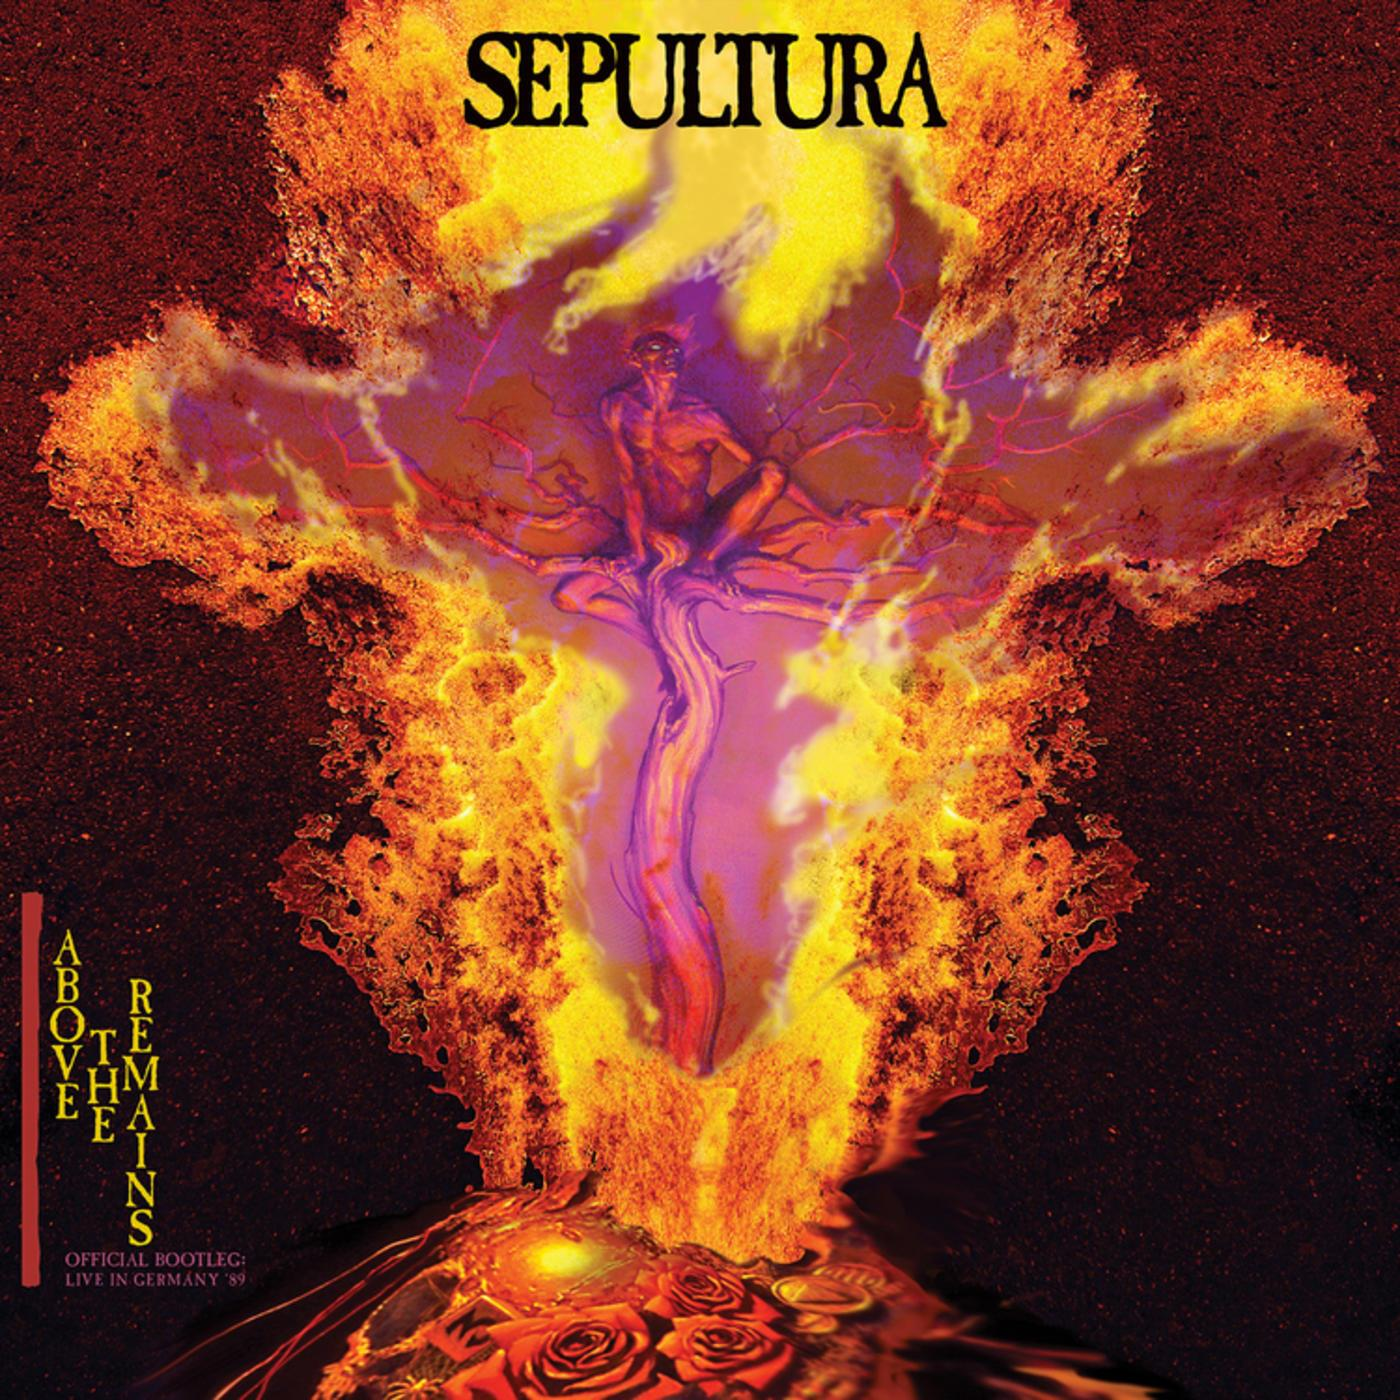 Sepultura - Above the Remains [LTD LP]